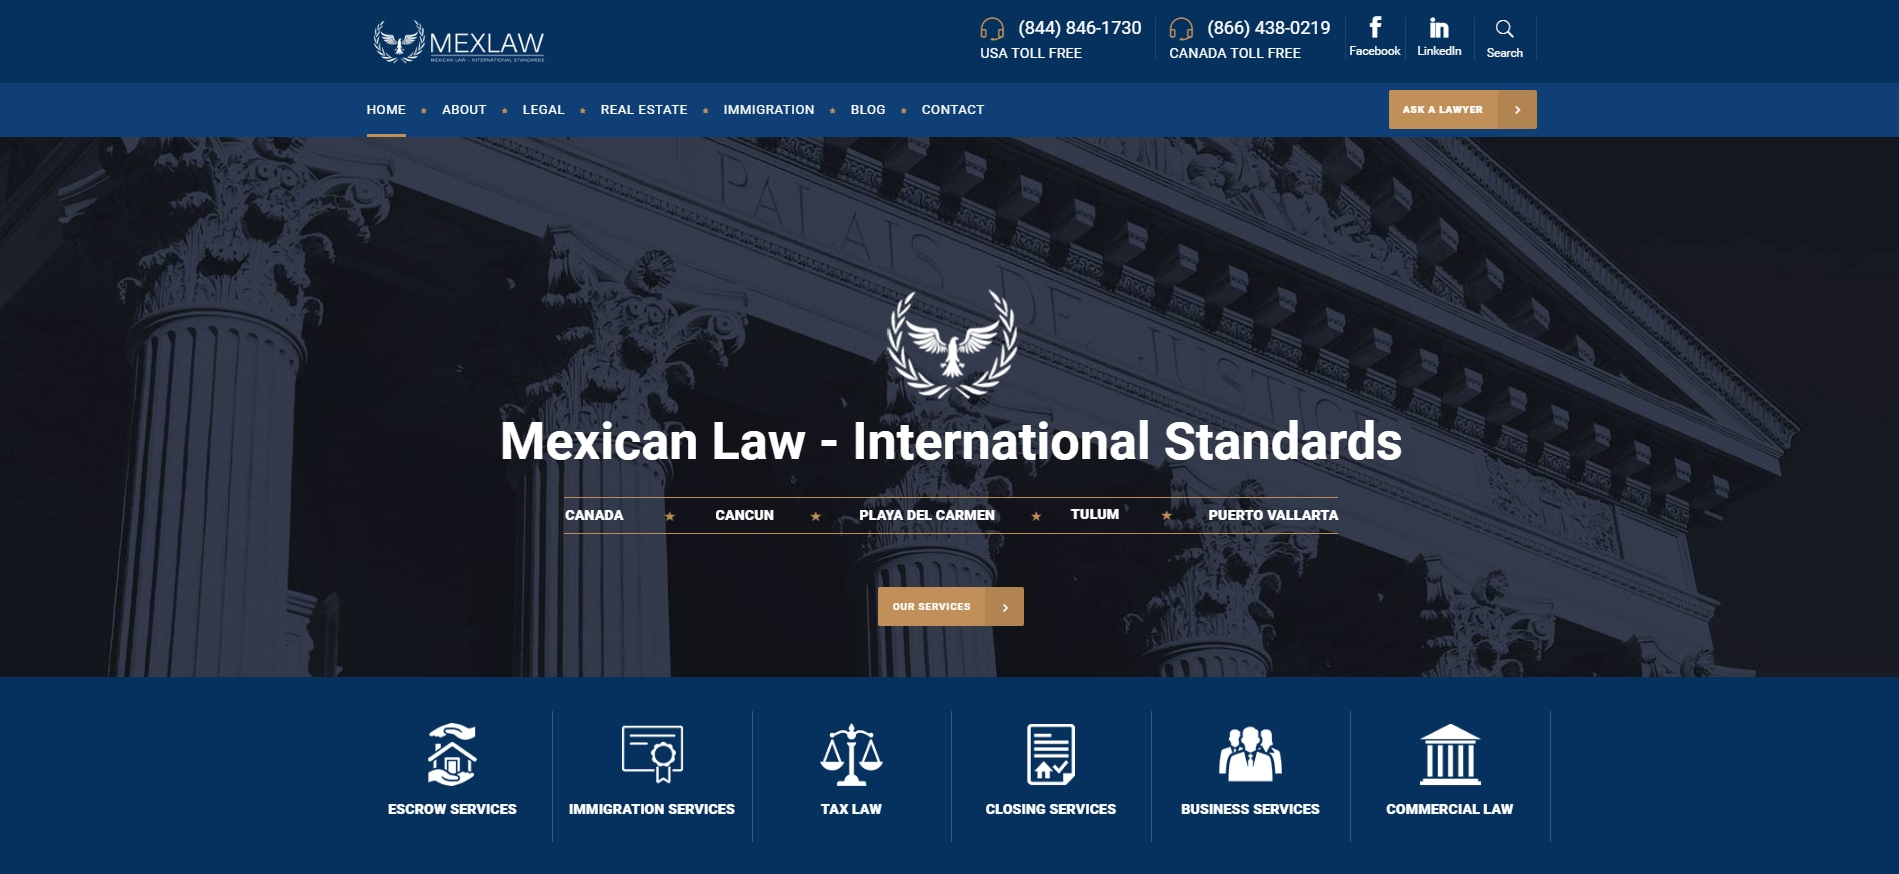 MEXLAW Mexican law firm operated by Canadian and American Lawyers